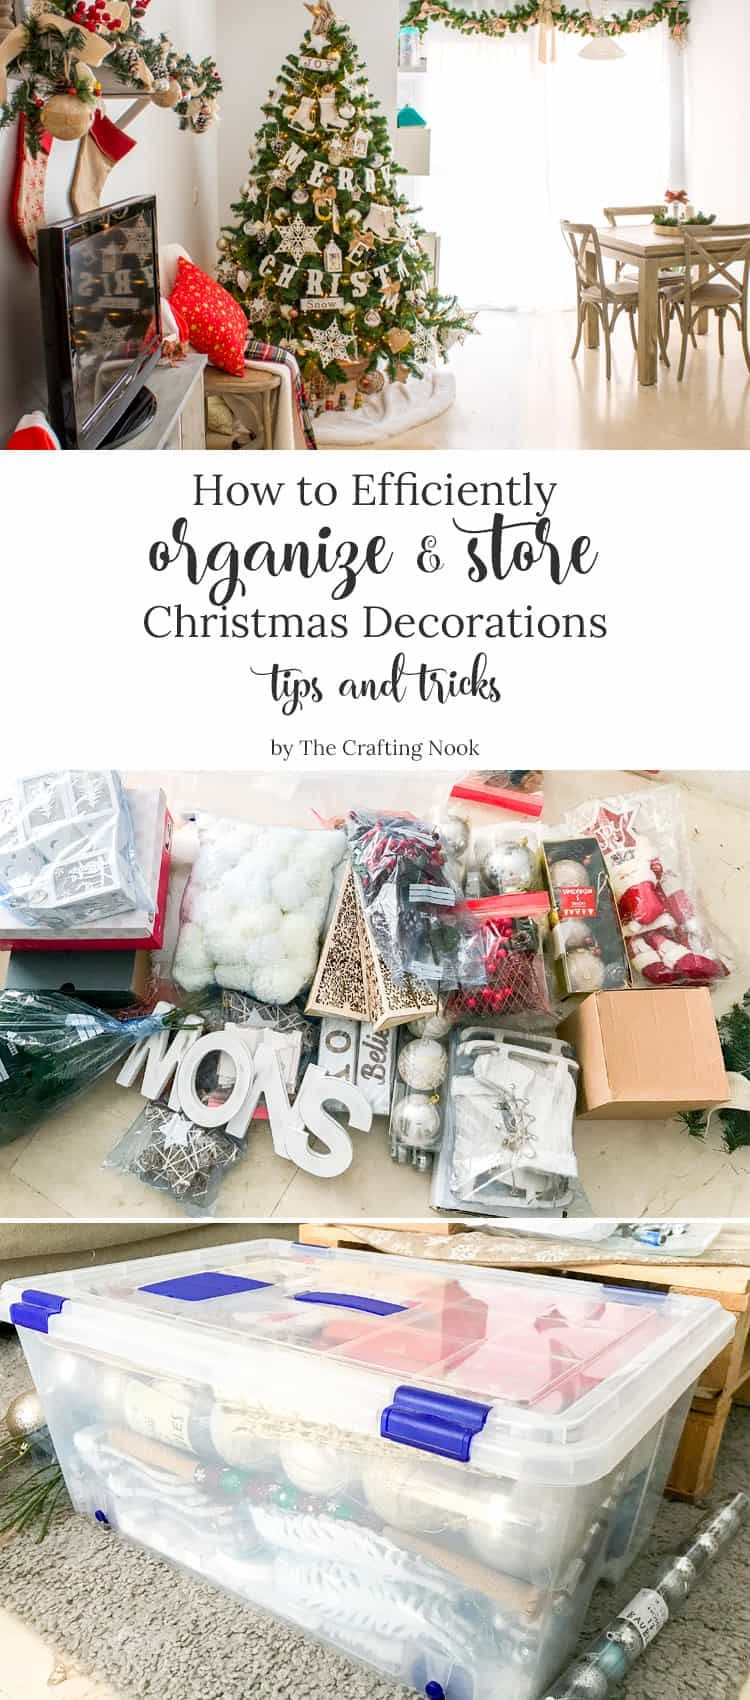 Clever Ways to Efficiently Organize and Store Christmas Decorations ...